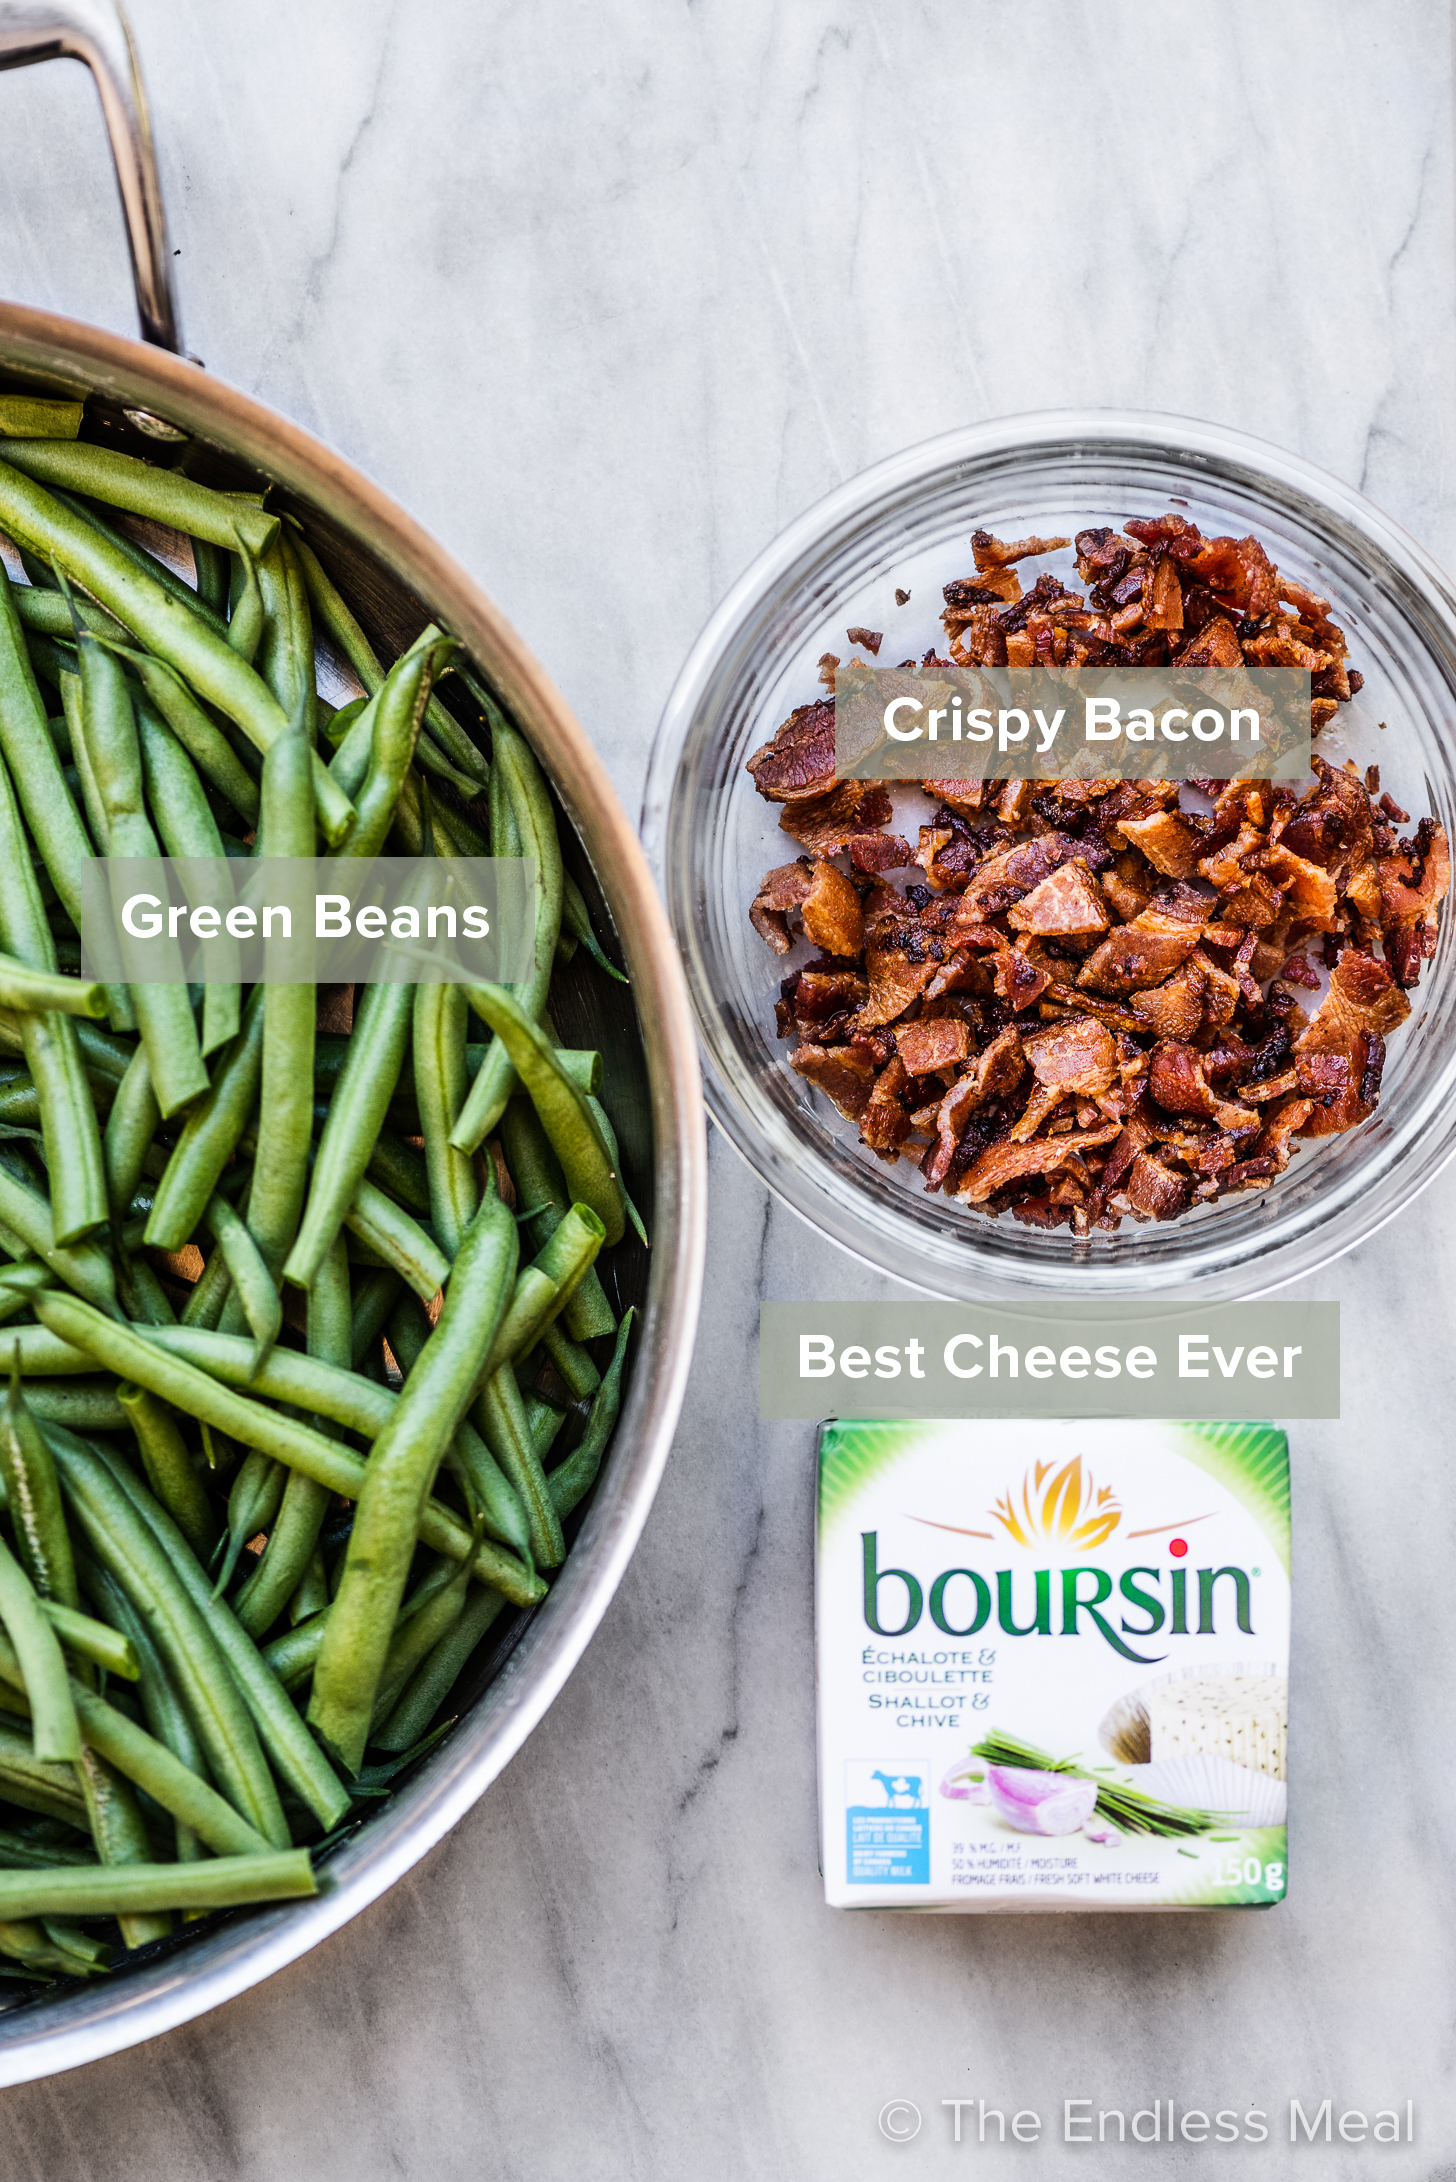 The ingredients to make green beans with bacon and boursin.